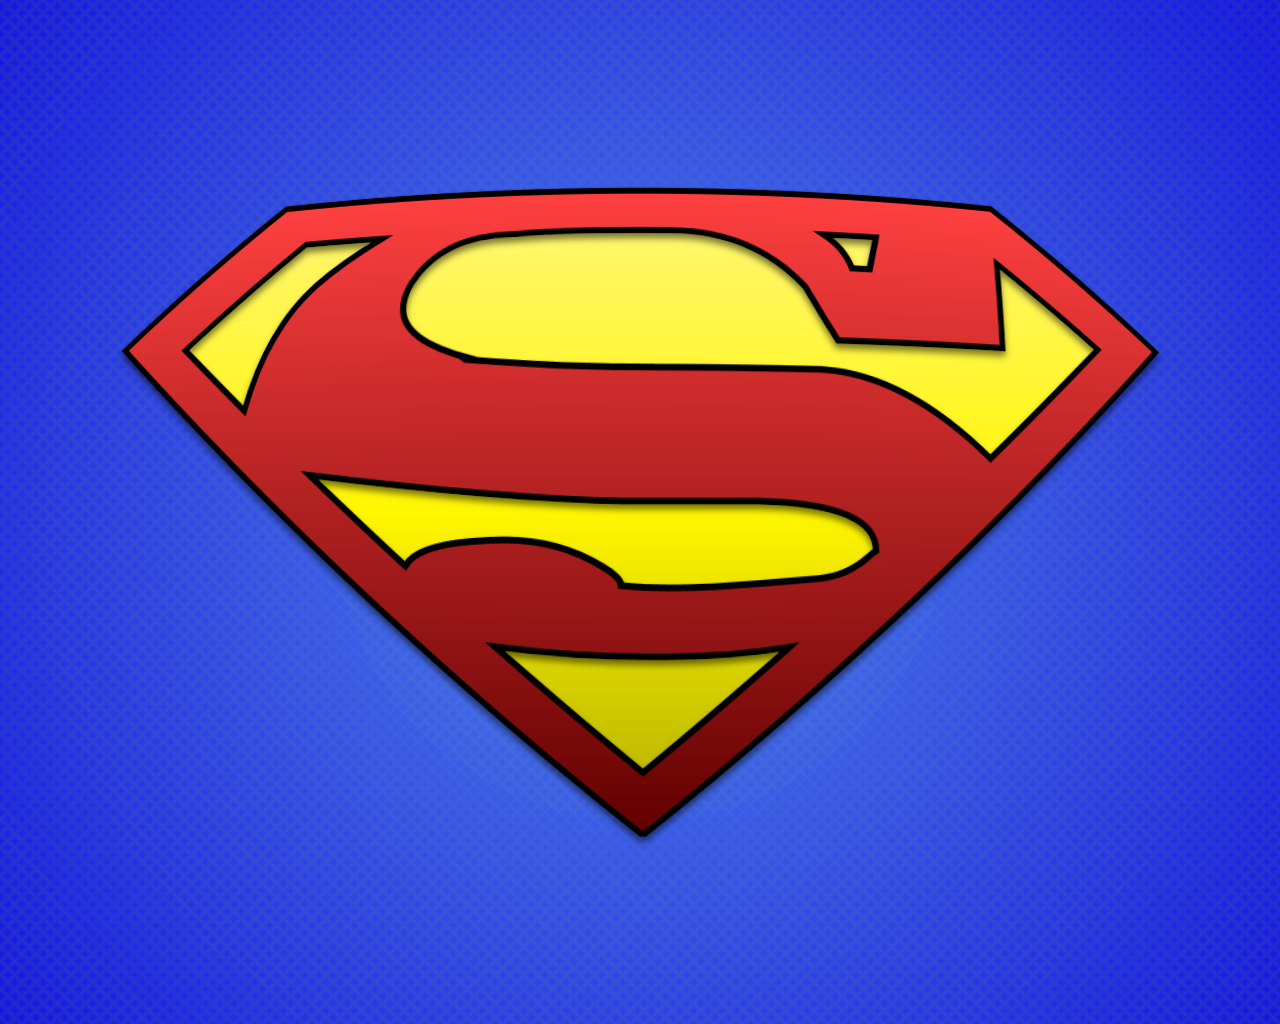 High Quality Image of Superman Logo | 1280x1024 px